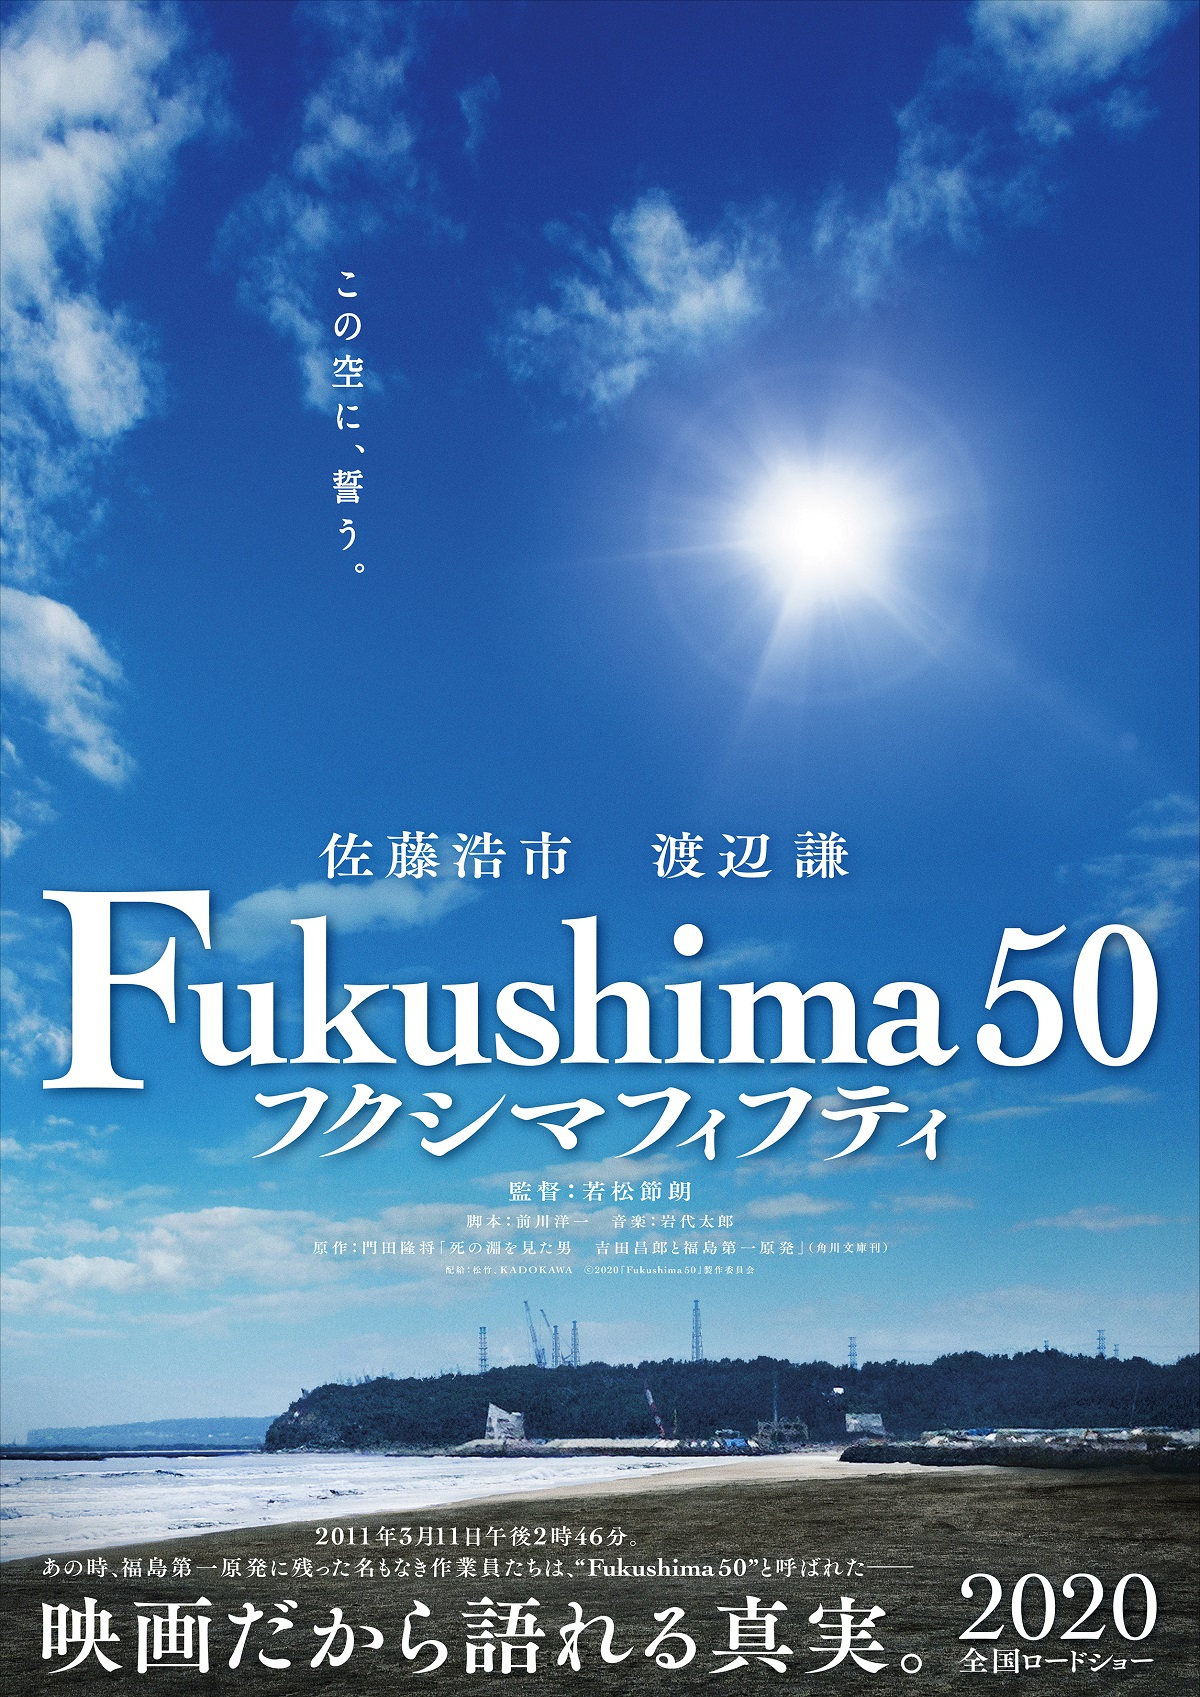 Poster Released For Fukushima 50 Film About the Fukushima